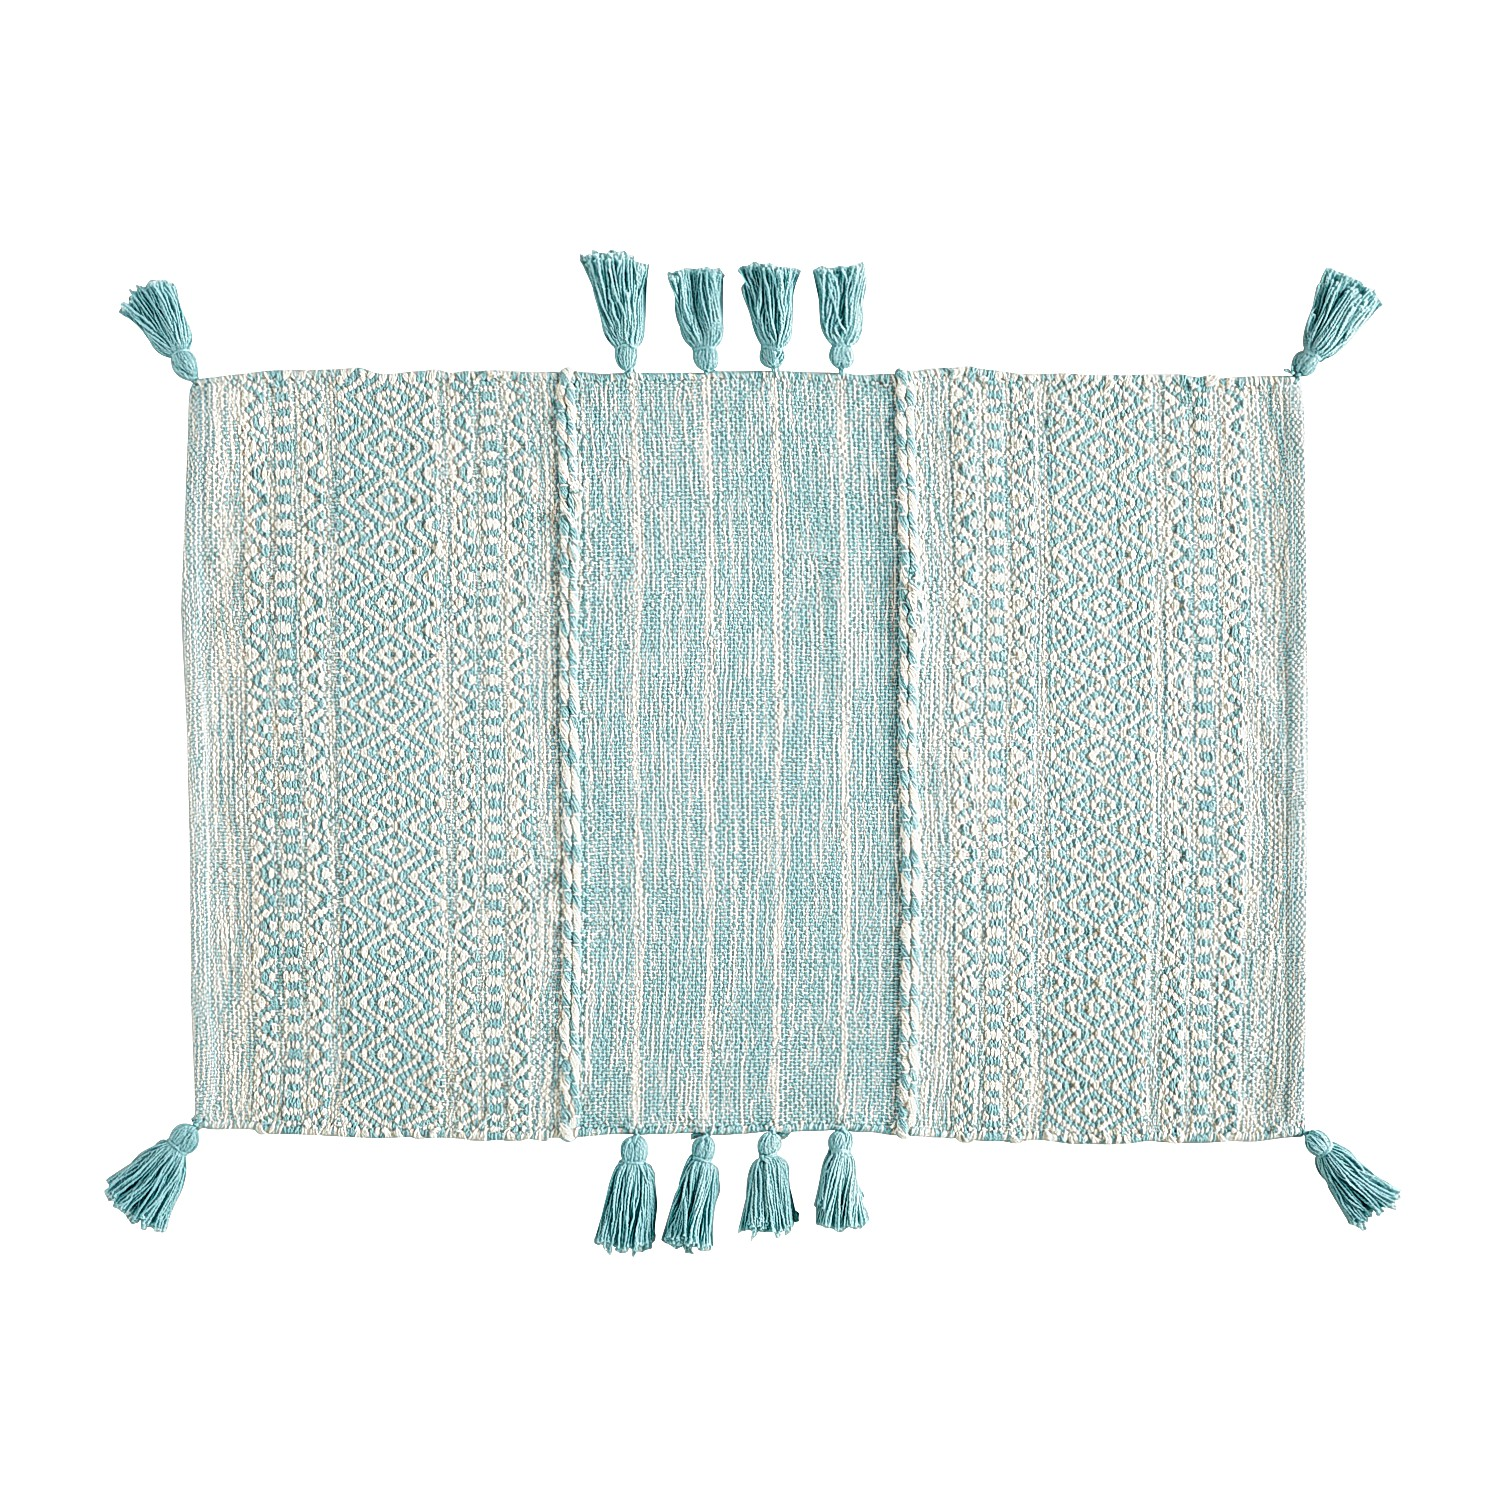 variation thumbnail of Blended Aqua 2x3 Rug with Tassels